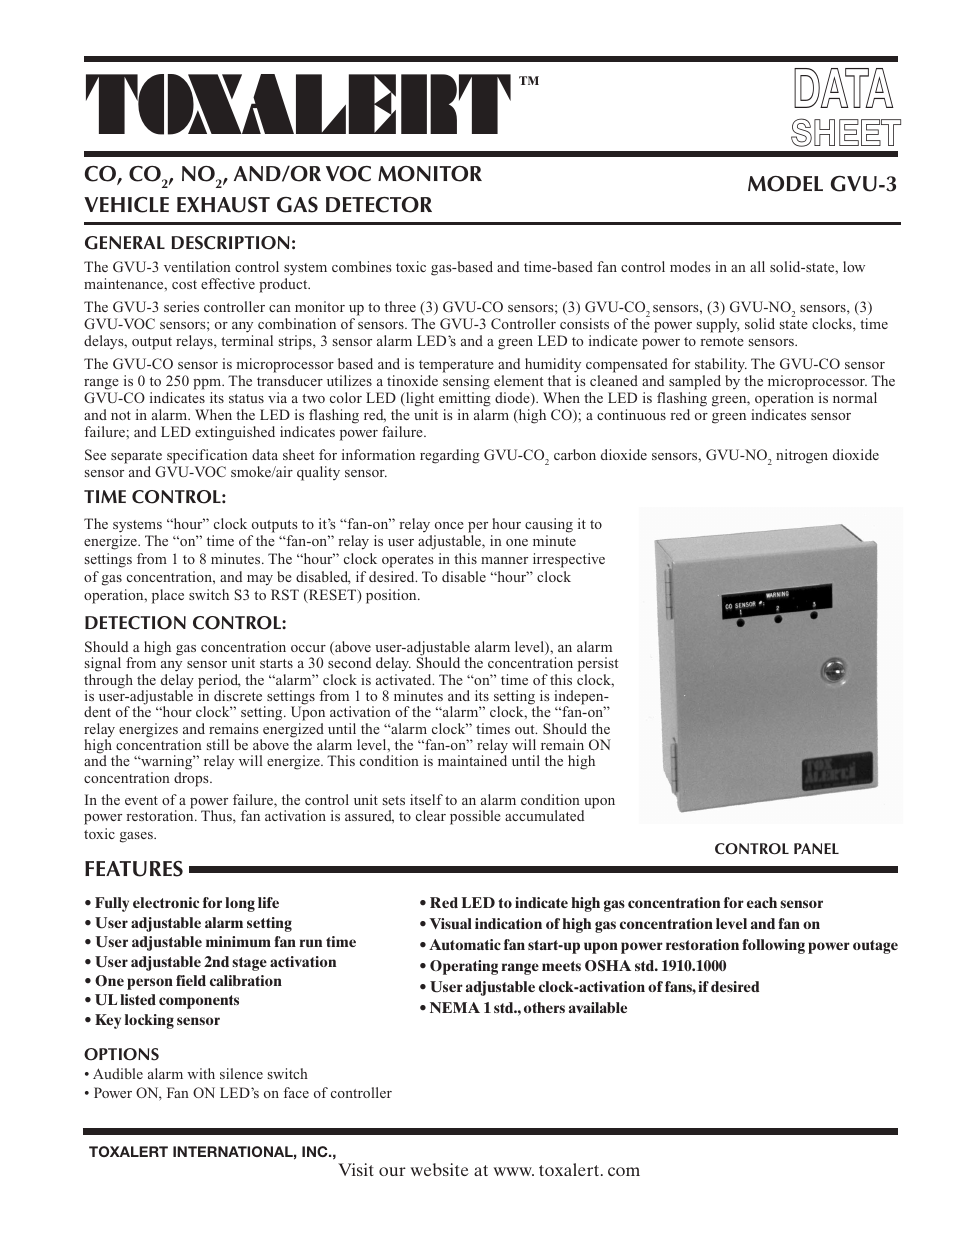 Toxalert Gvu 3 User Manual 4 Pages